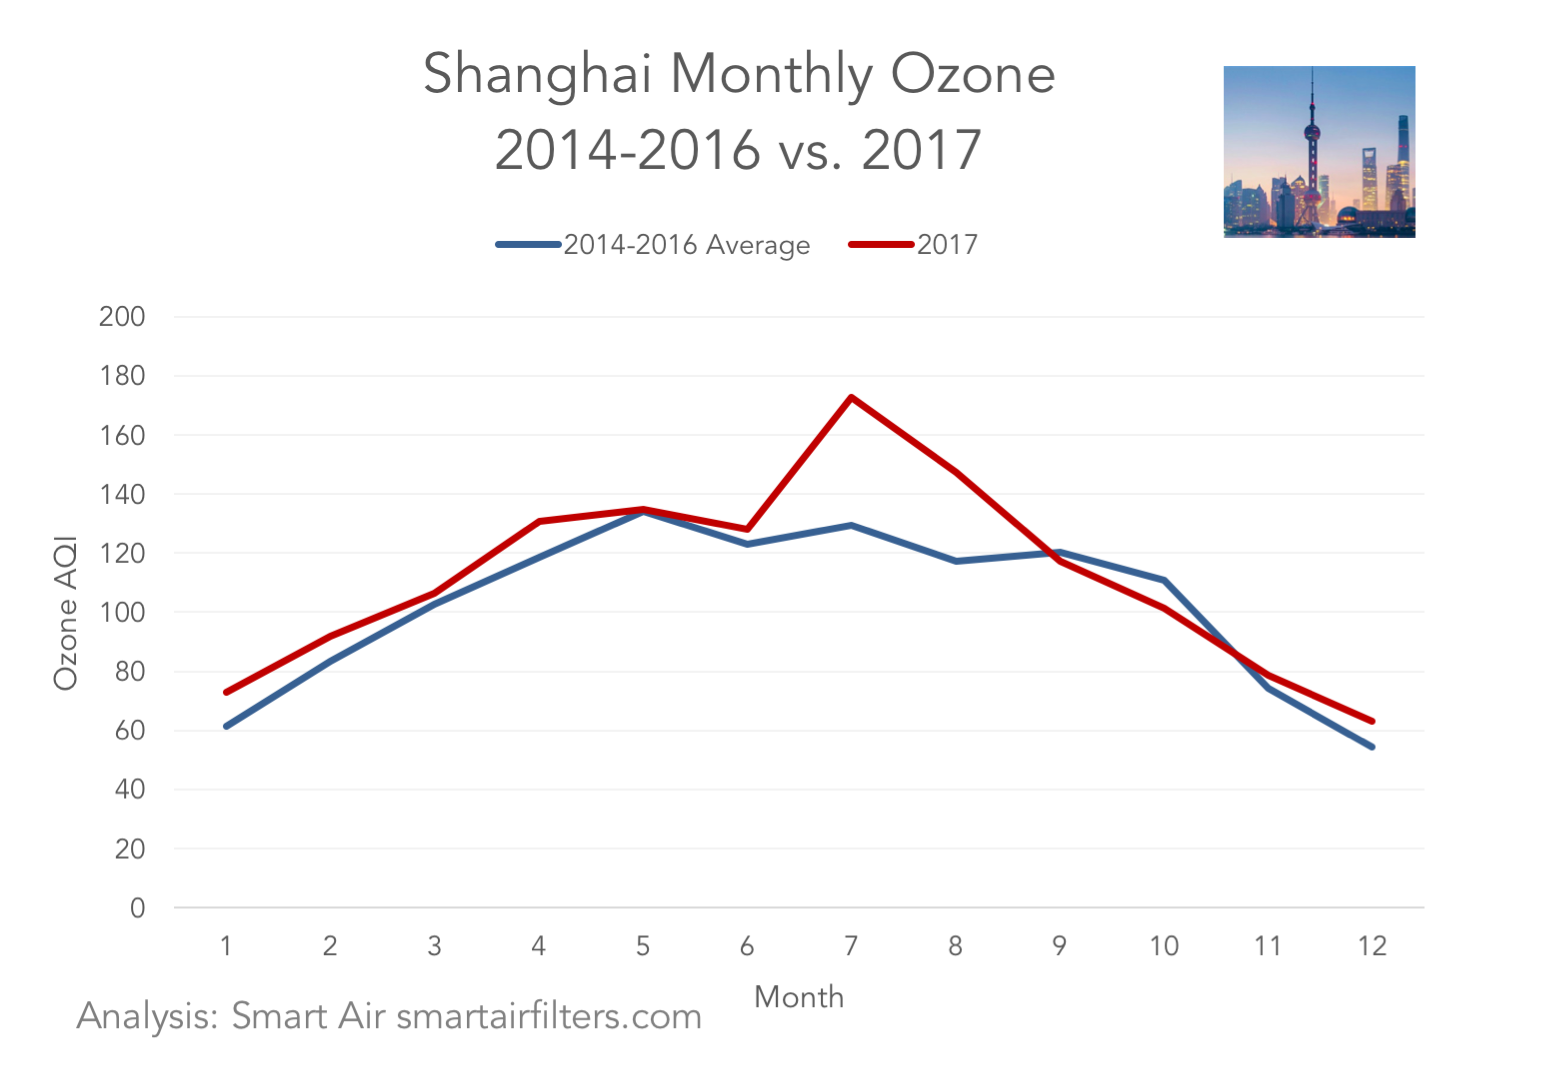 Shanghai monthly ozone pollution air quality